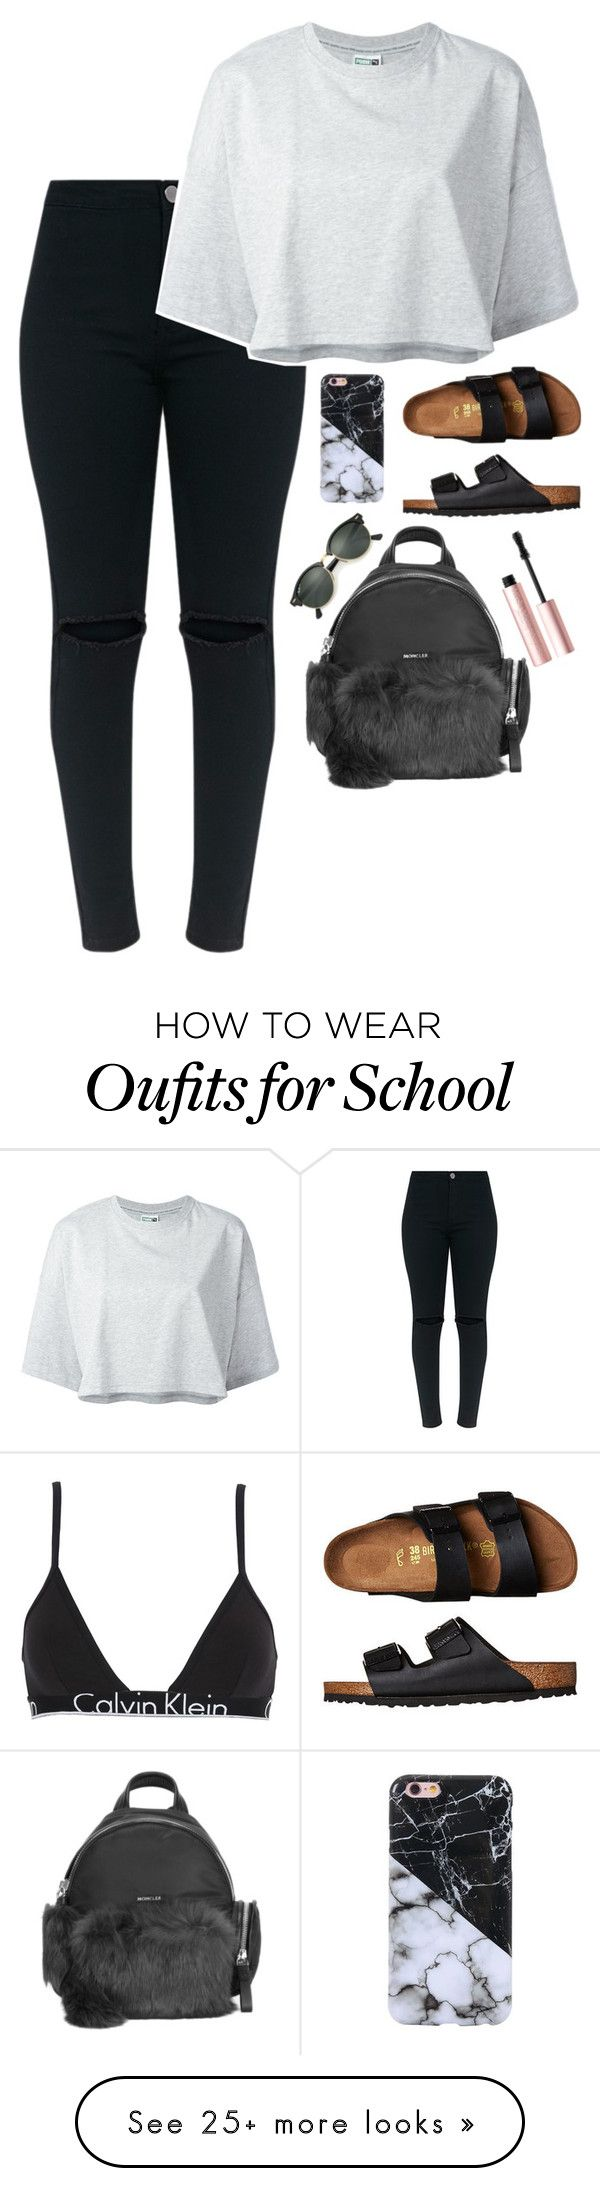 """~last day of school~"" by autumnsnyder on Polyvore featuring Calvin Klein Underwear, Puma, Birkenstock, Moncler, Ray-Ban and Too Faced Cosmetics"